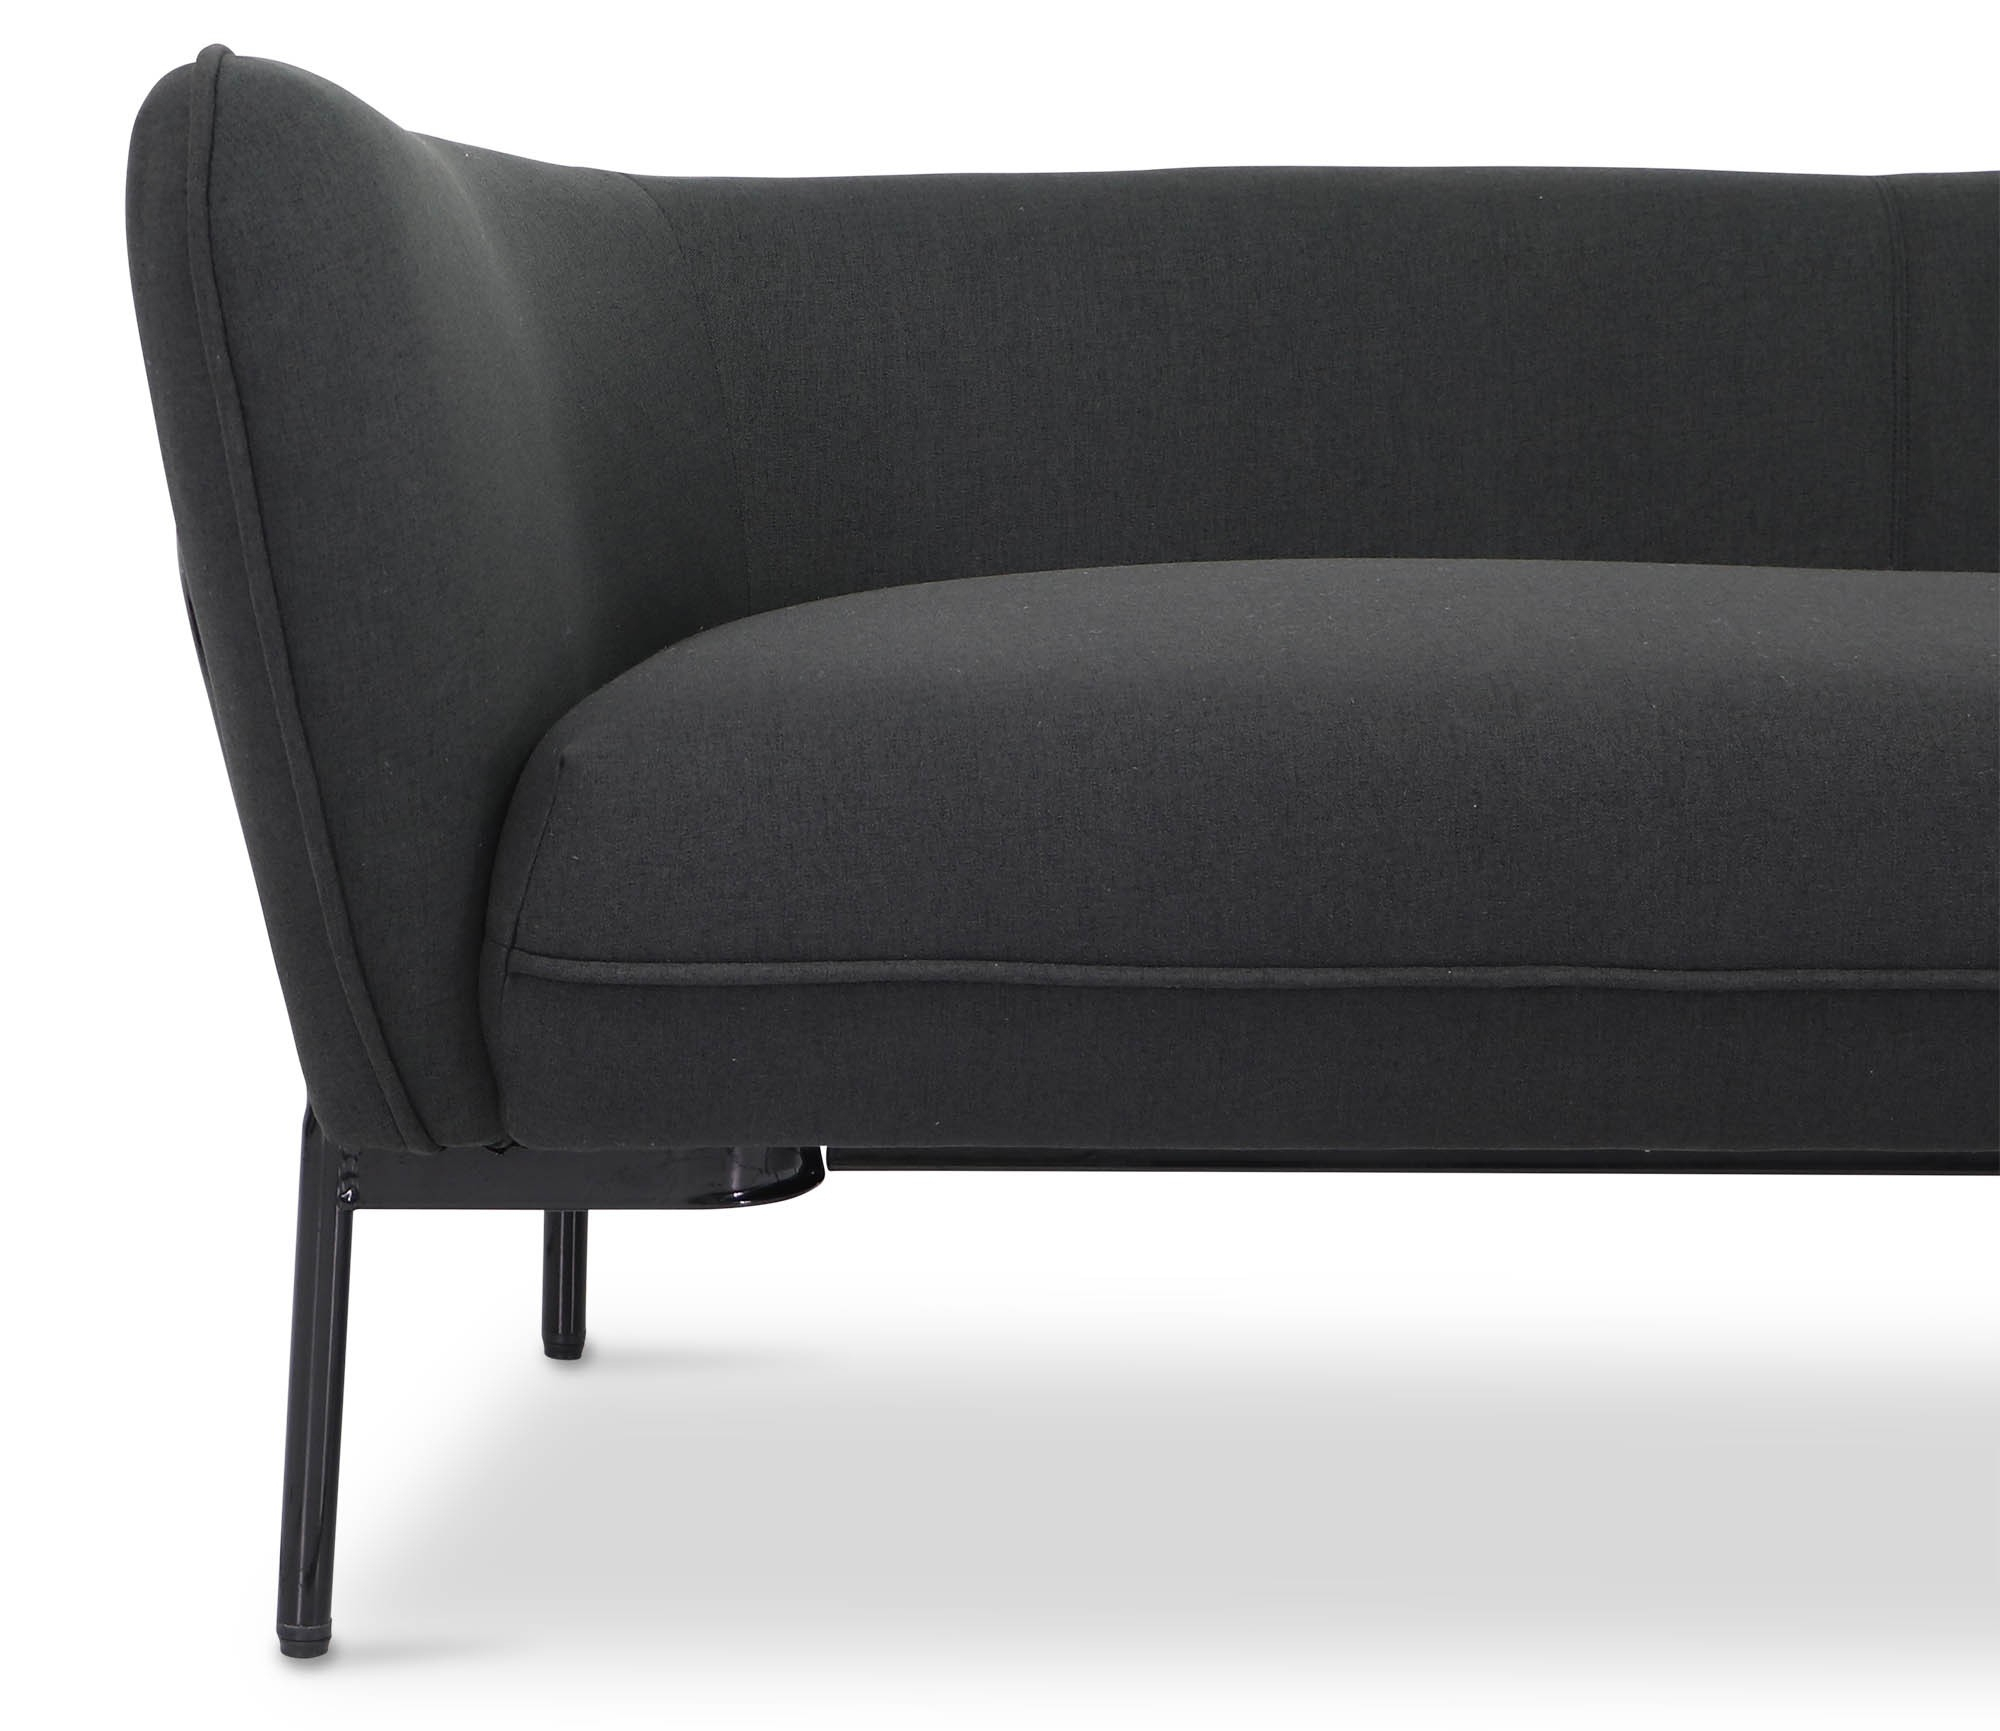 Karen Sofa In Black With Black Iron Stand | Furniture & Home Décor Inside Karen Sofa Chairs (View 3 of 25)